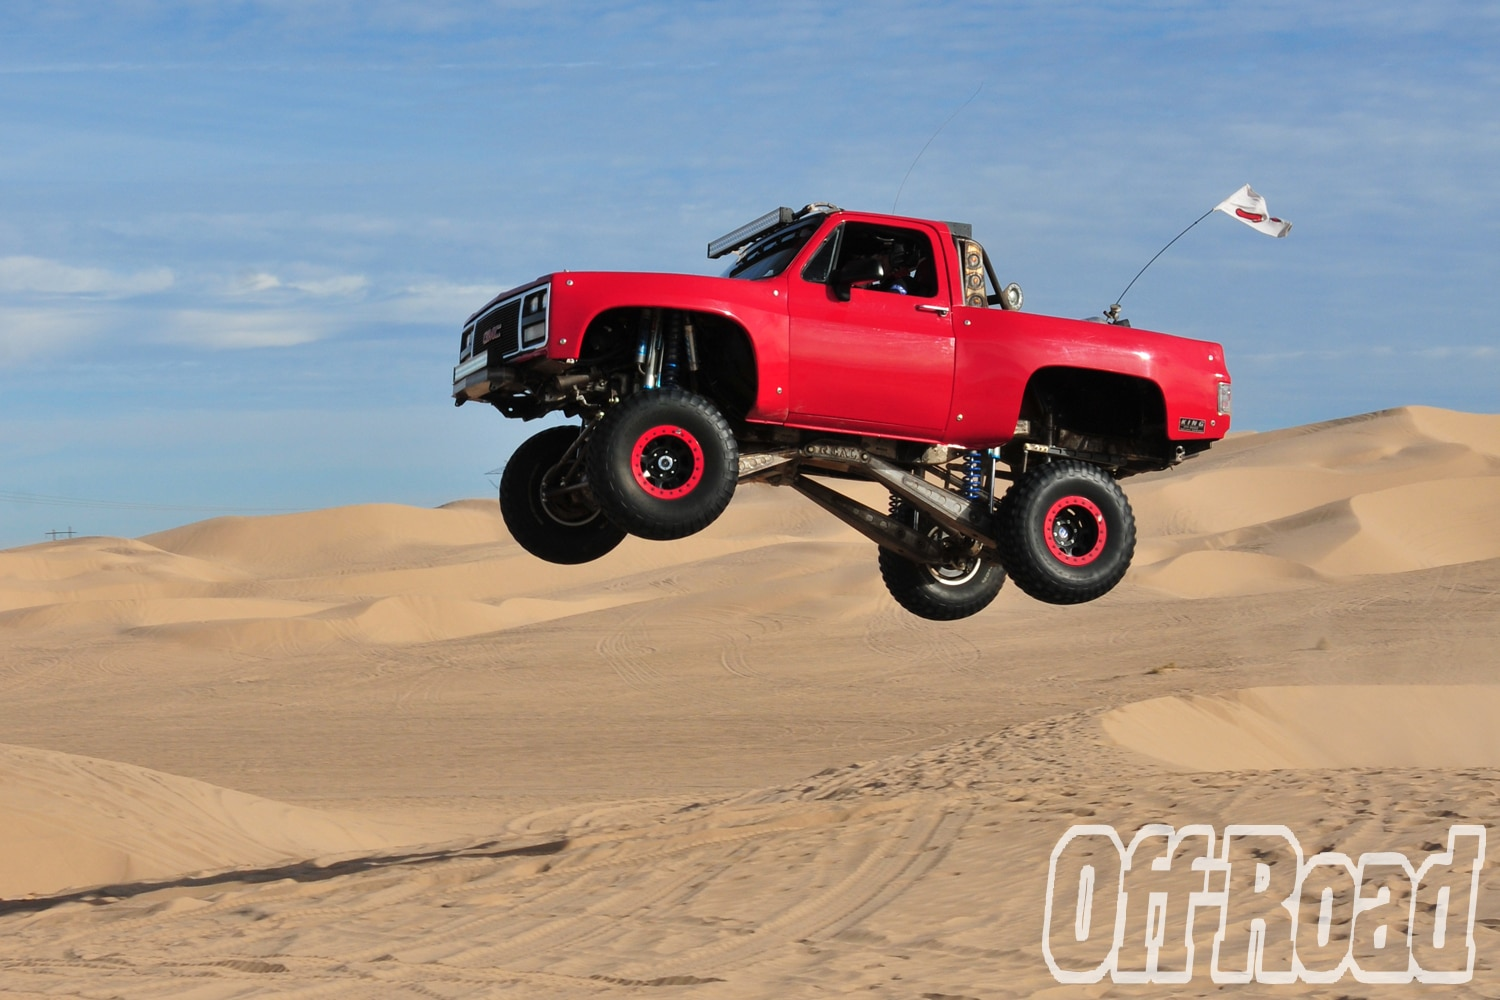 1991 GMC K5 Jimmy Glamis Off Road Magazine Cover Shoot 4